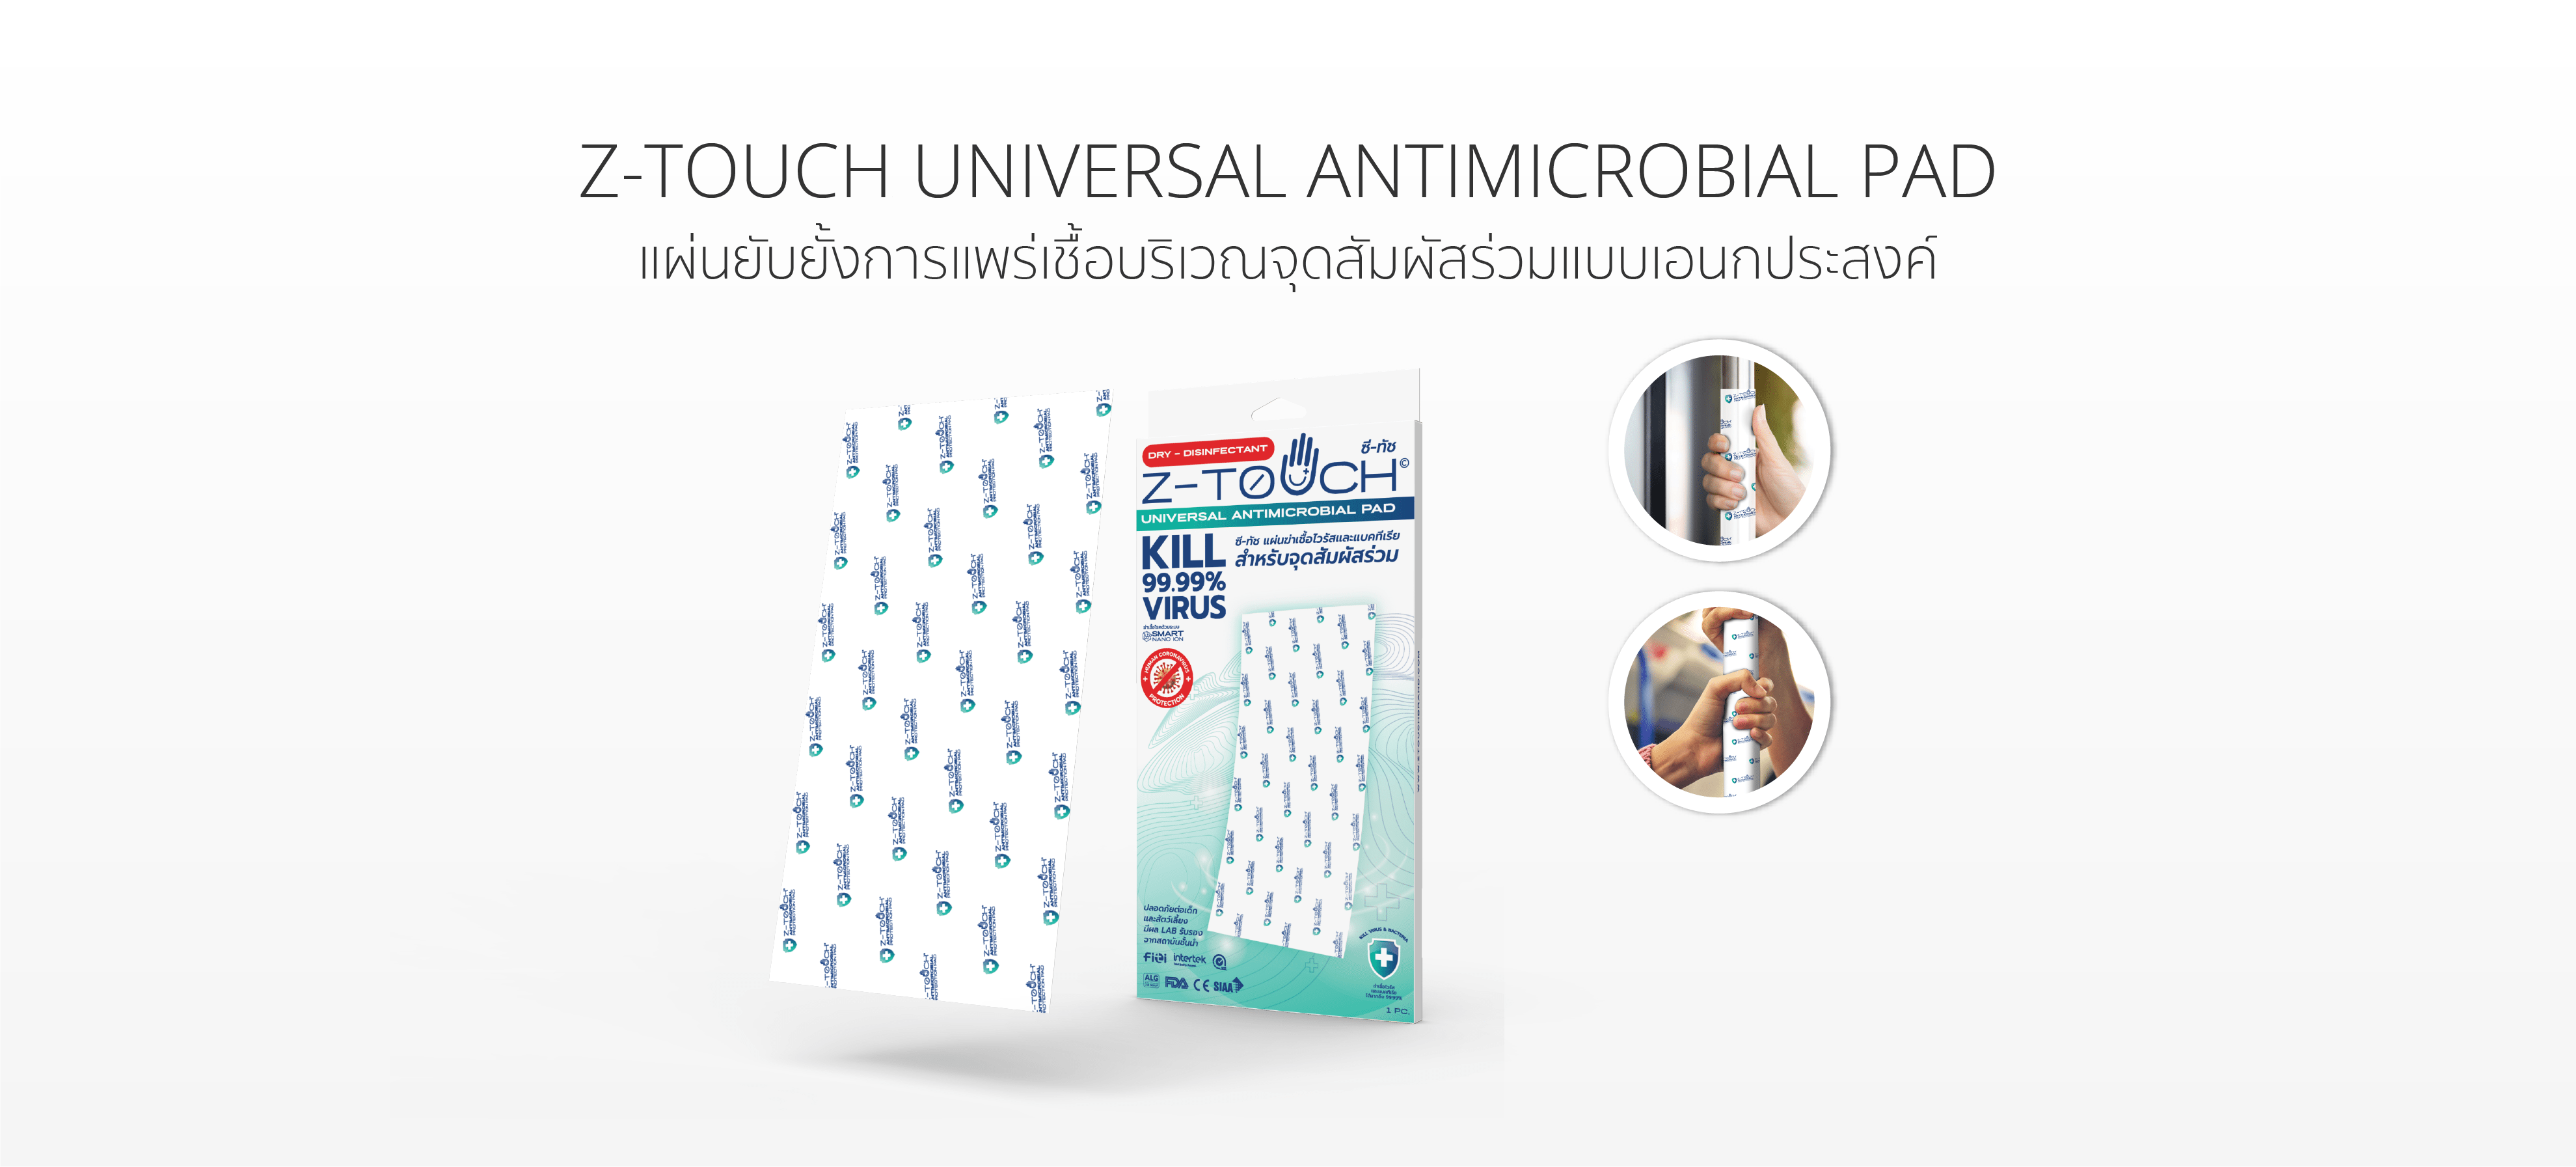 Z-Touch Universal Antimicrobial Pad